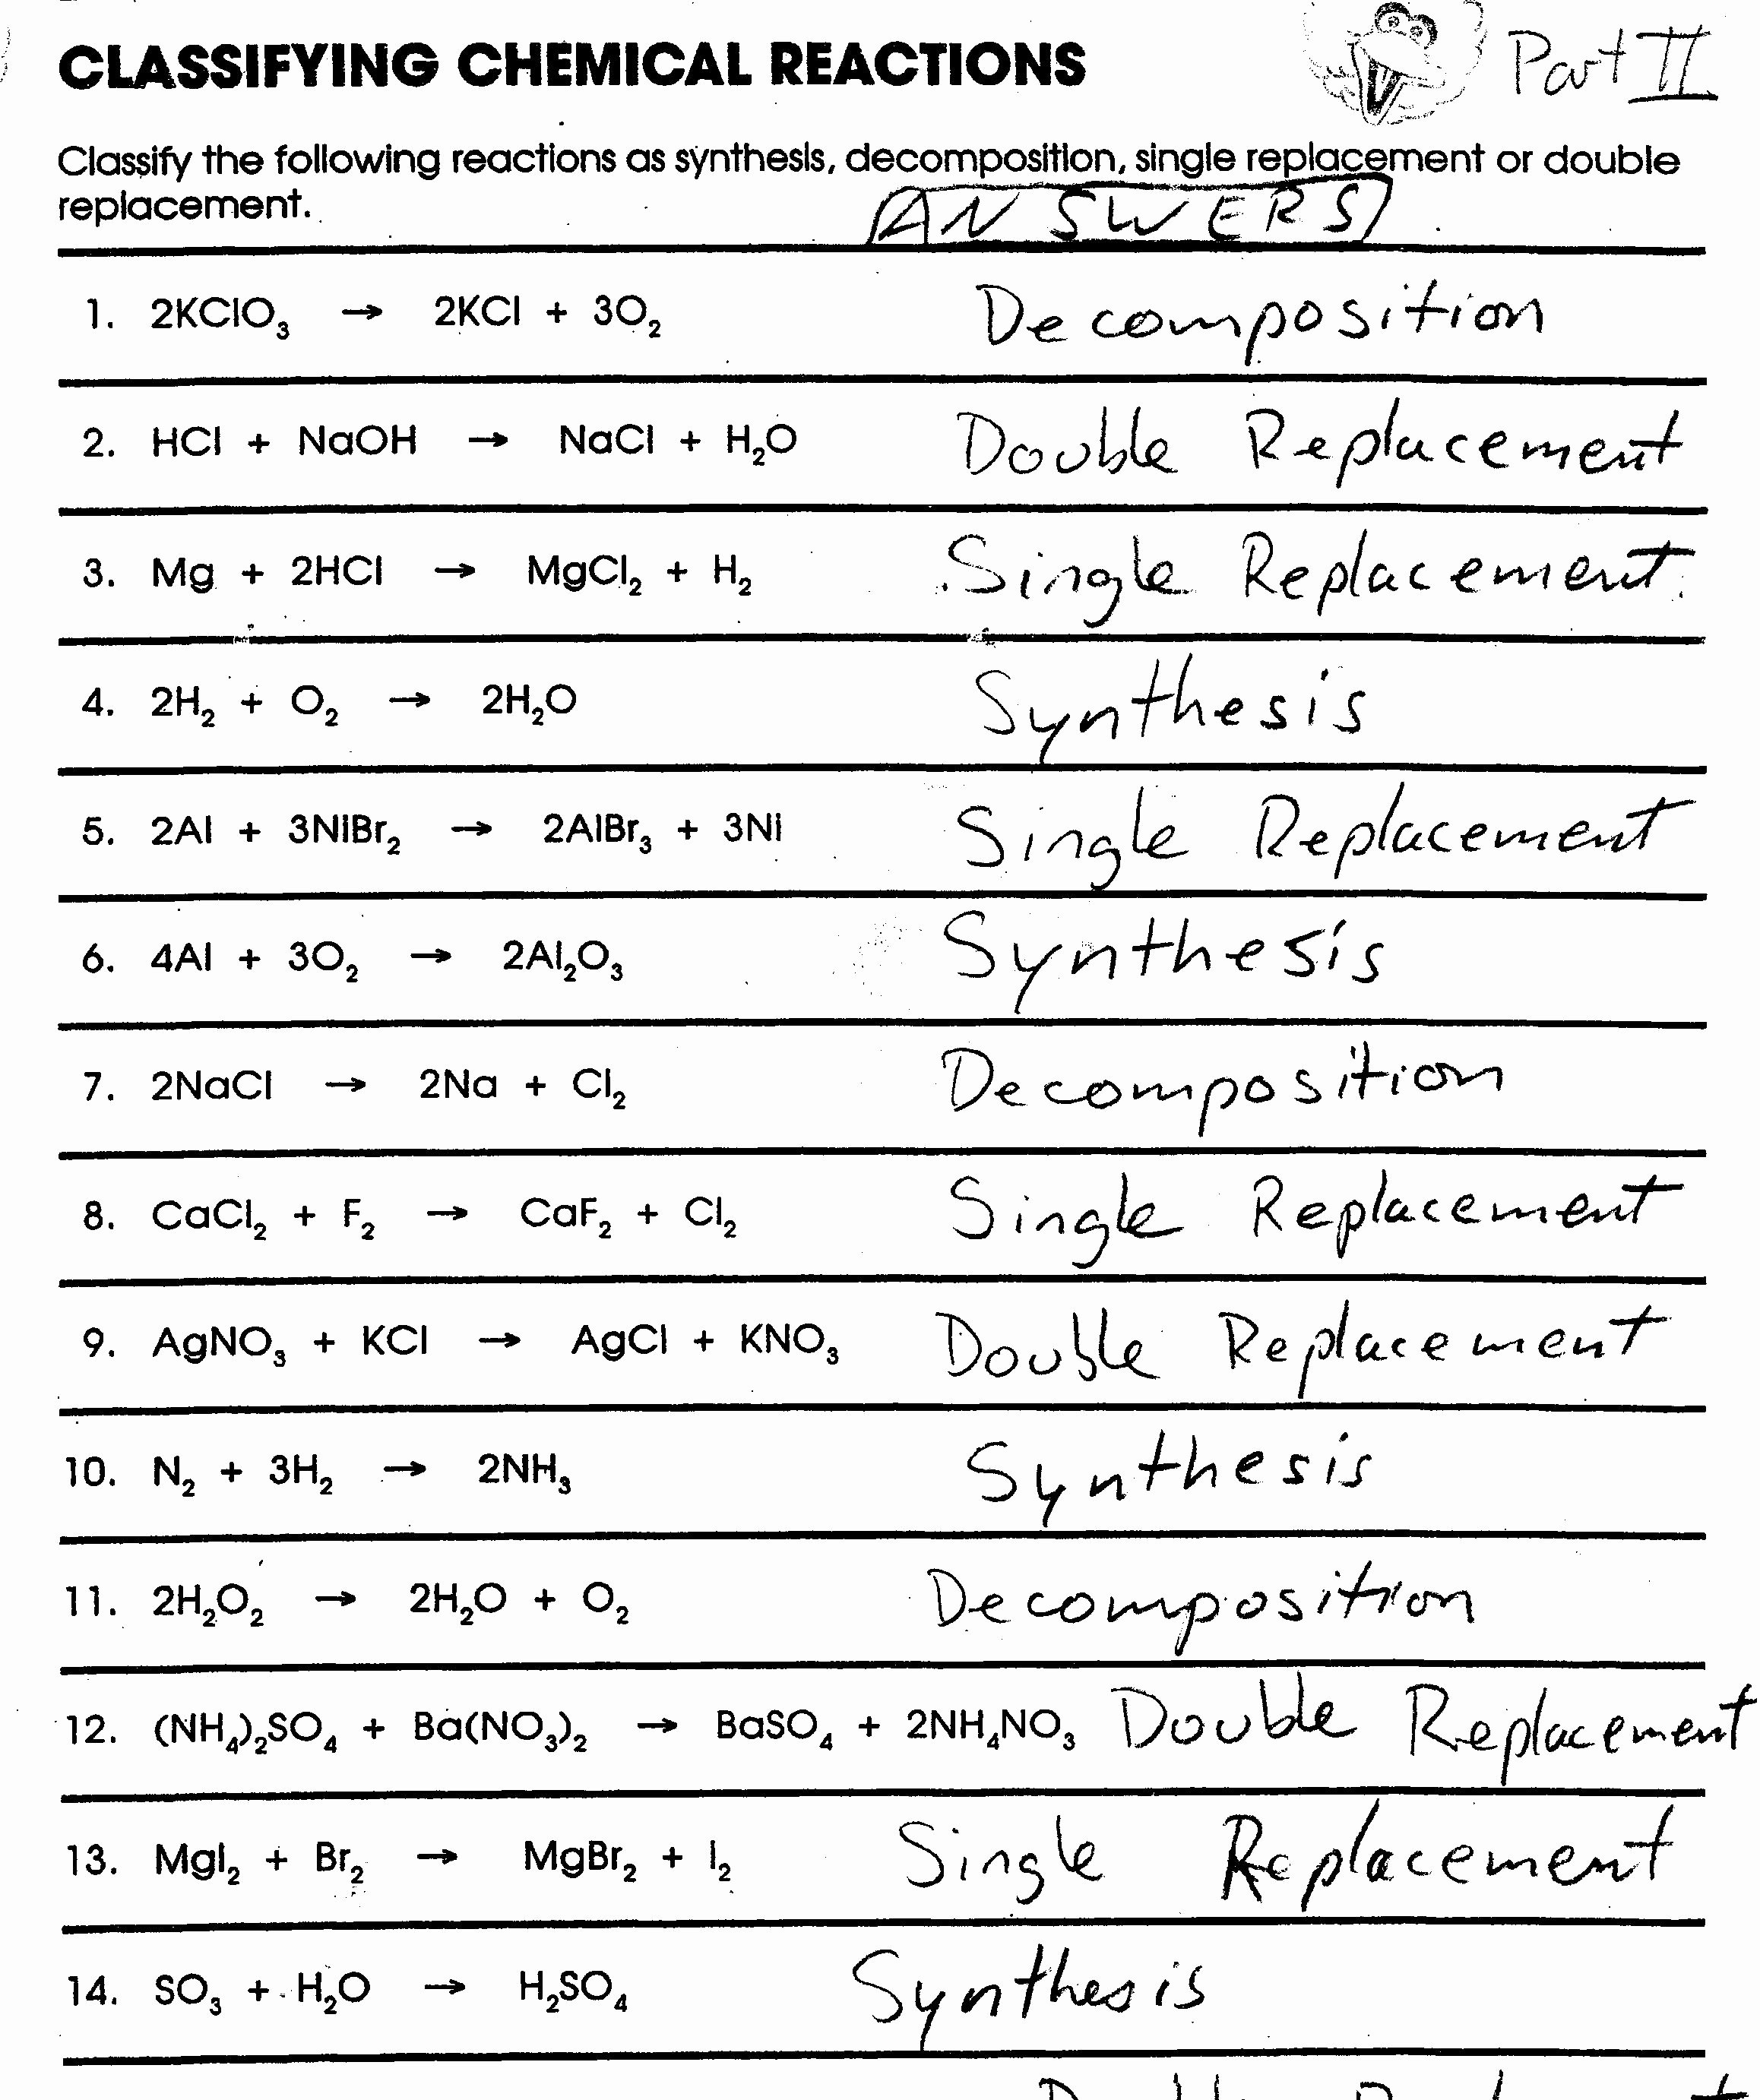 Classifying Chemical Reactions Worksheet Answers Elegant Svms